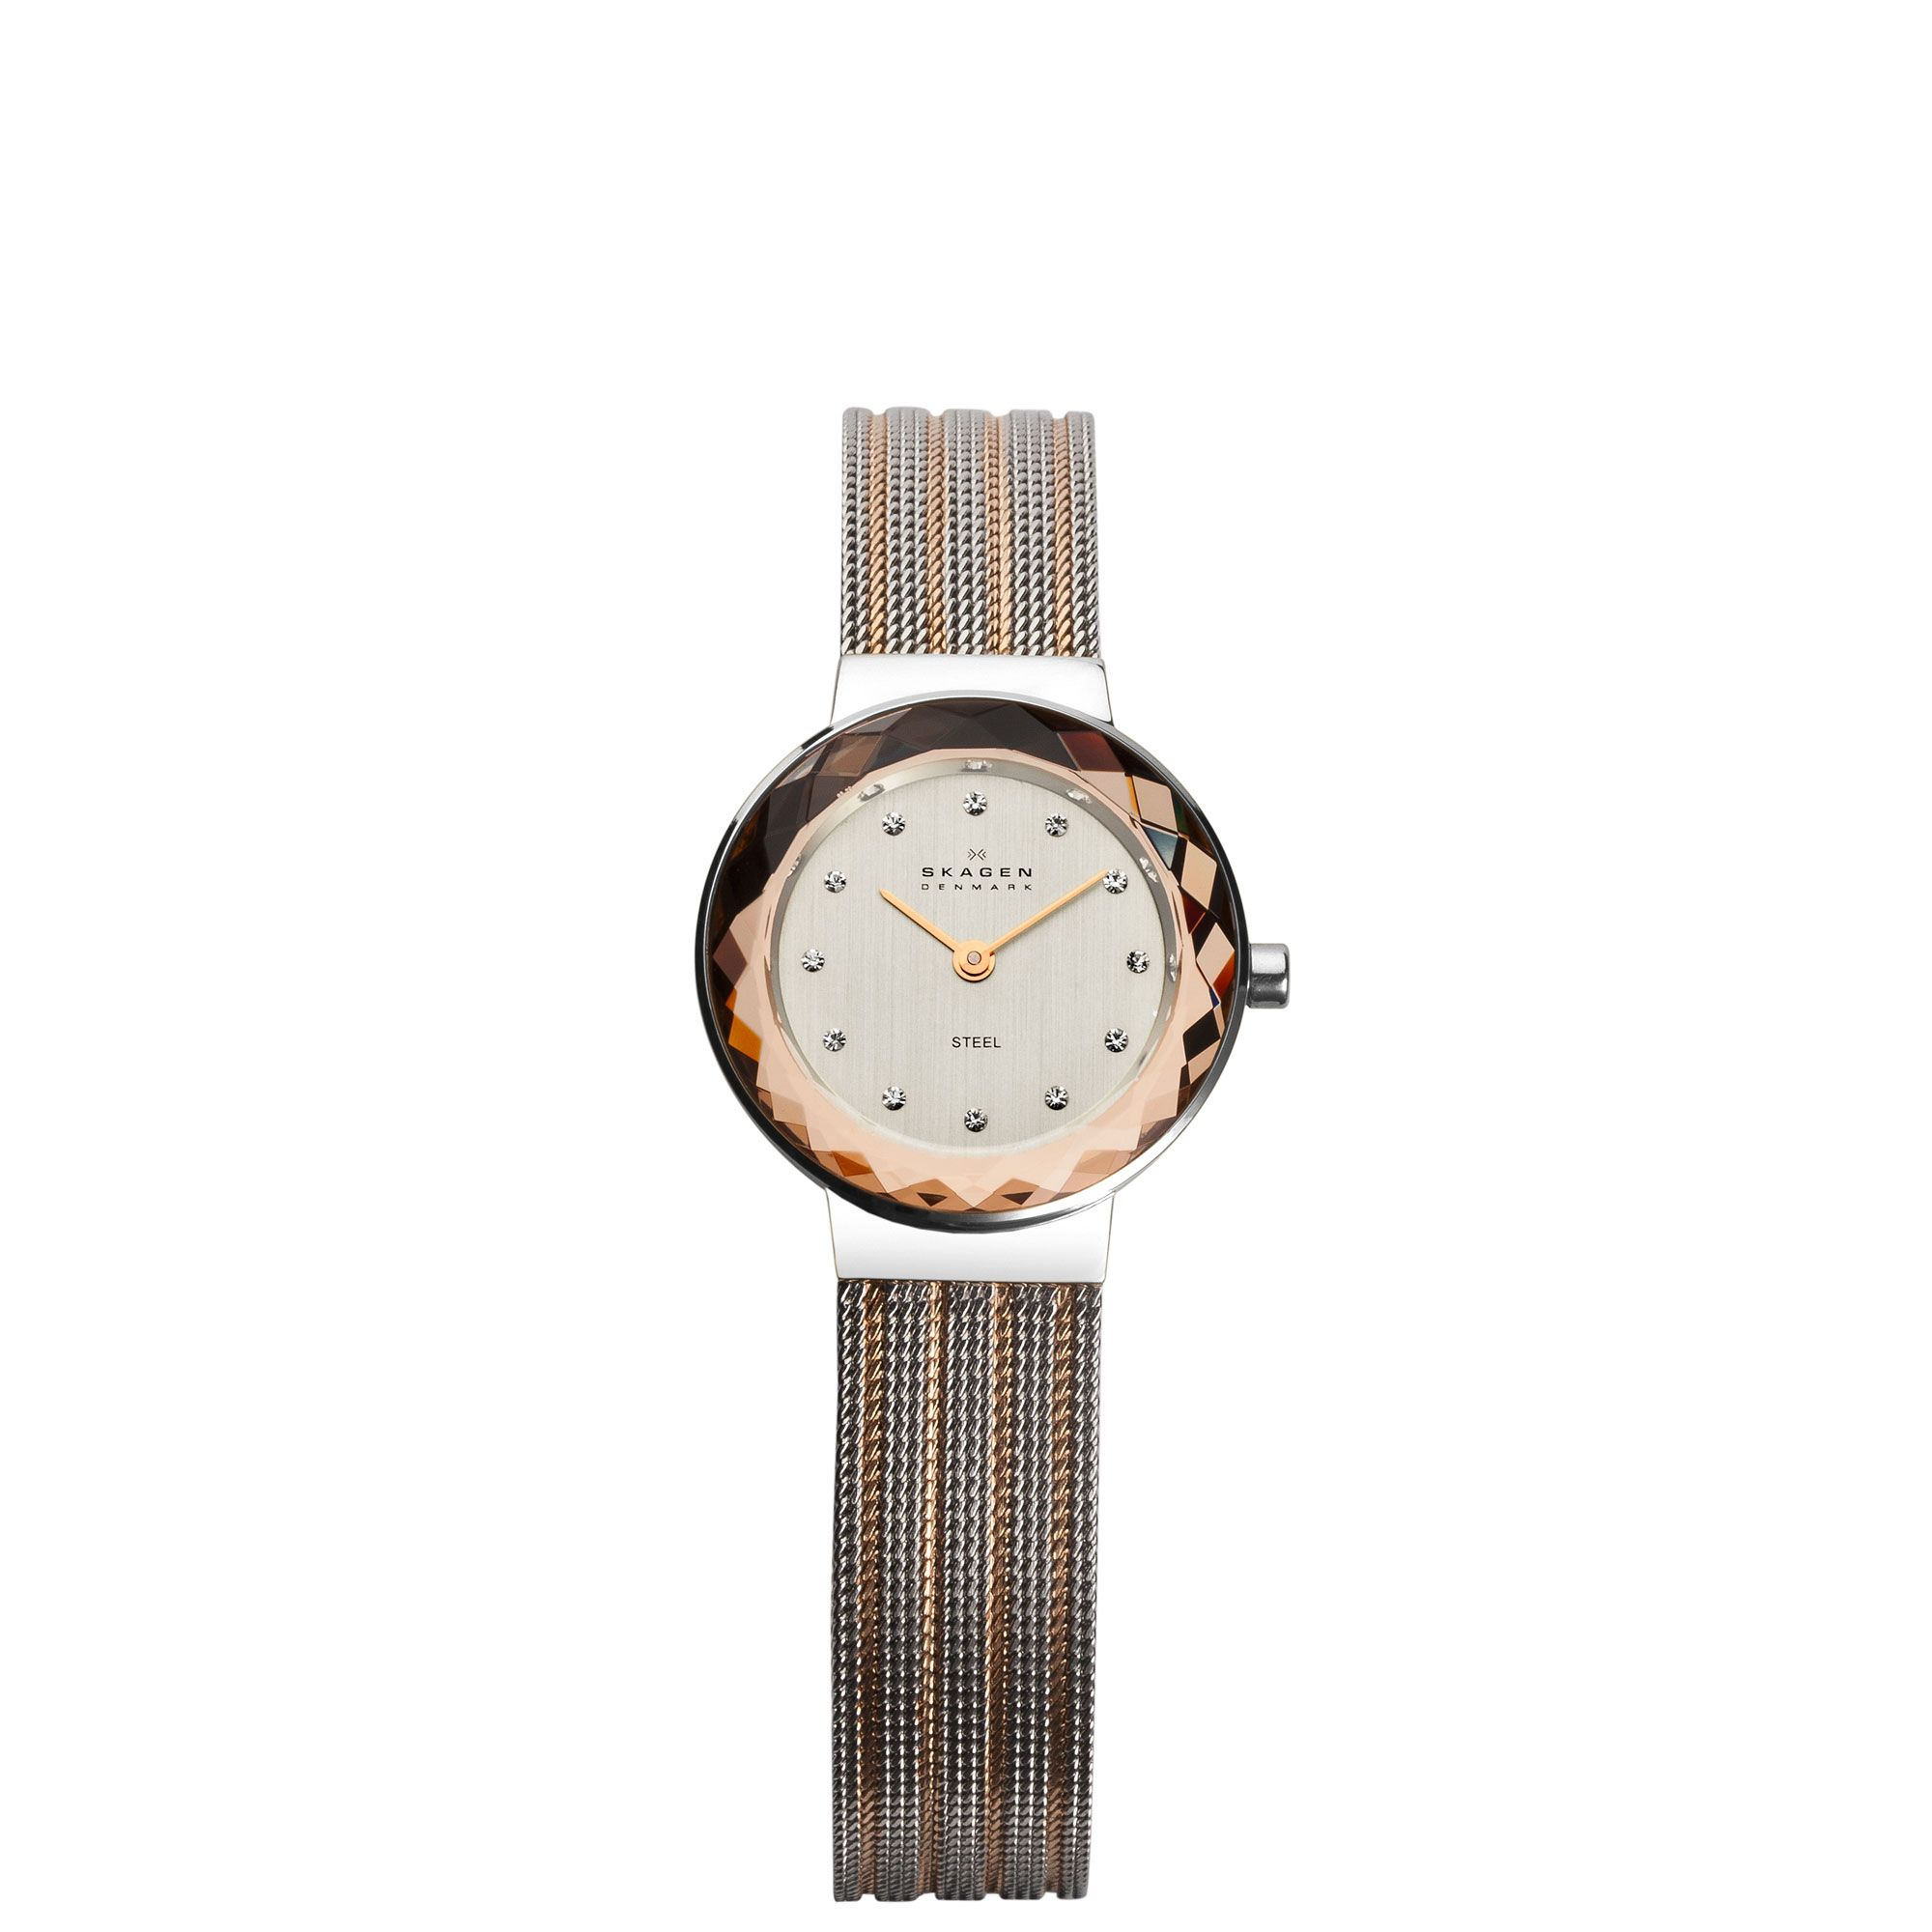 456SRS1 Leonora two tone ladies bracelet watch